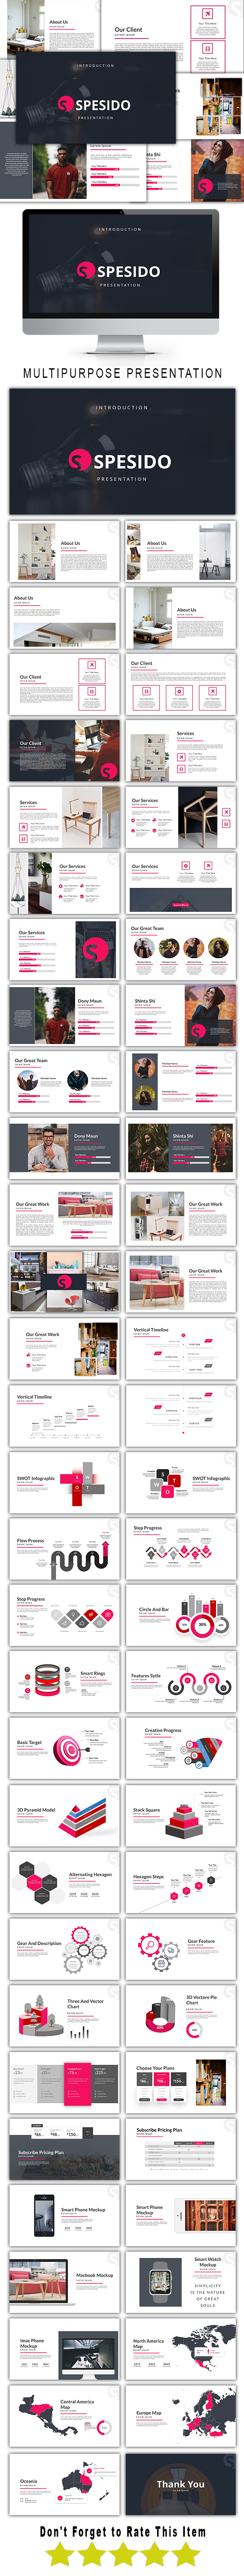 Spesido Multipurpose Powerpoint Template - PowerPoint Templates Presentation Templates